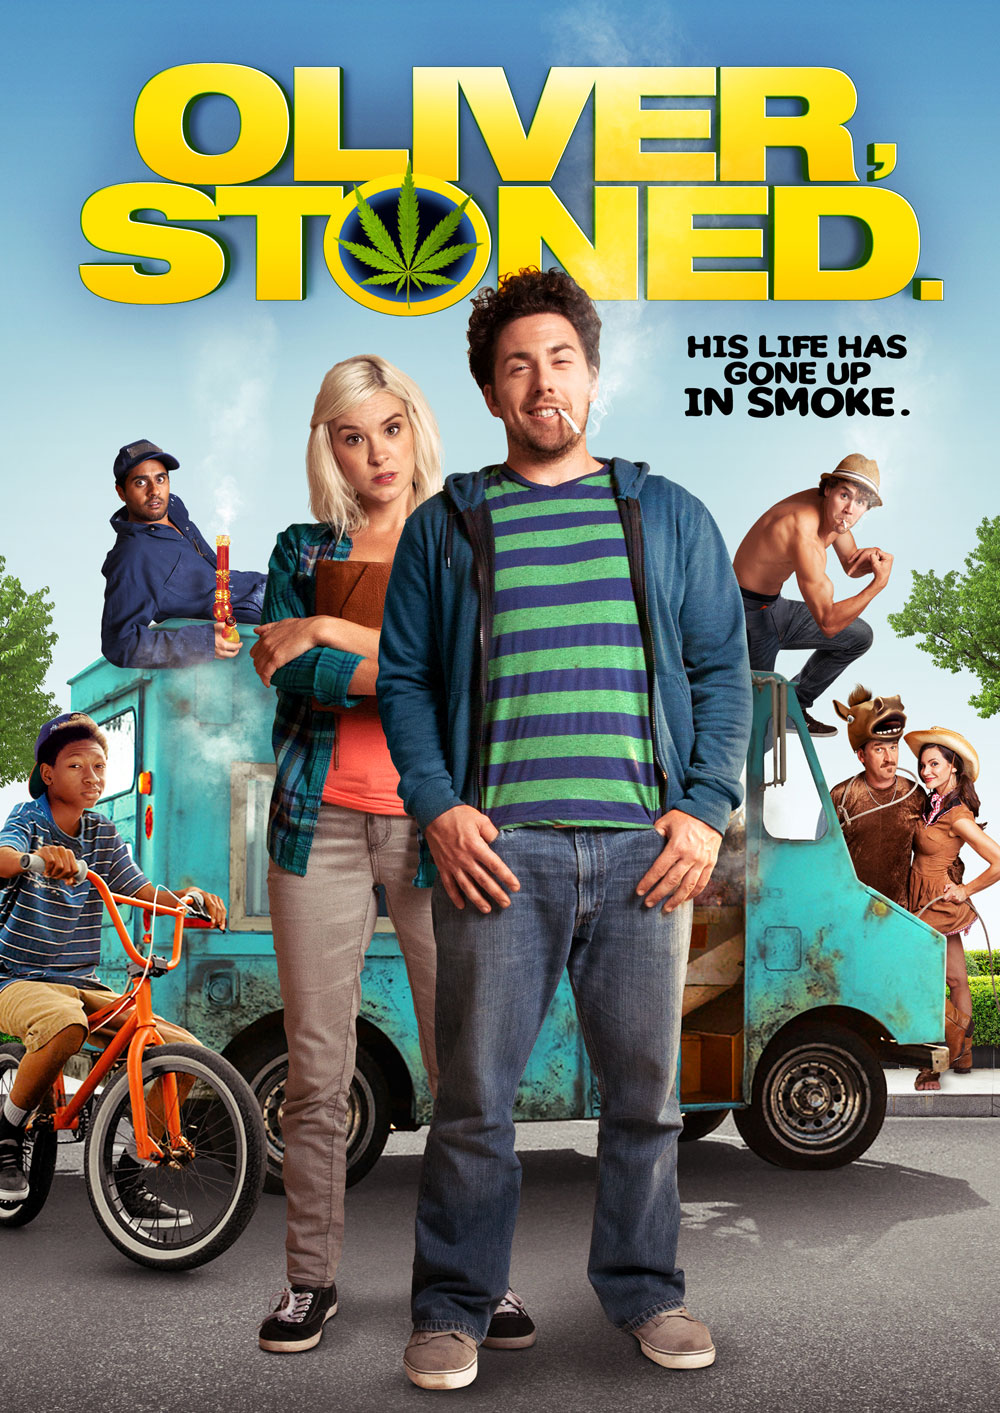 Oliver Stoned DVD cover